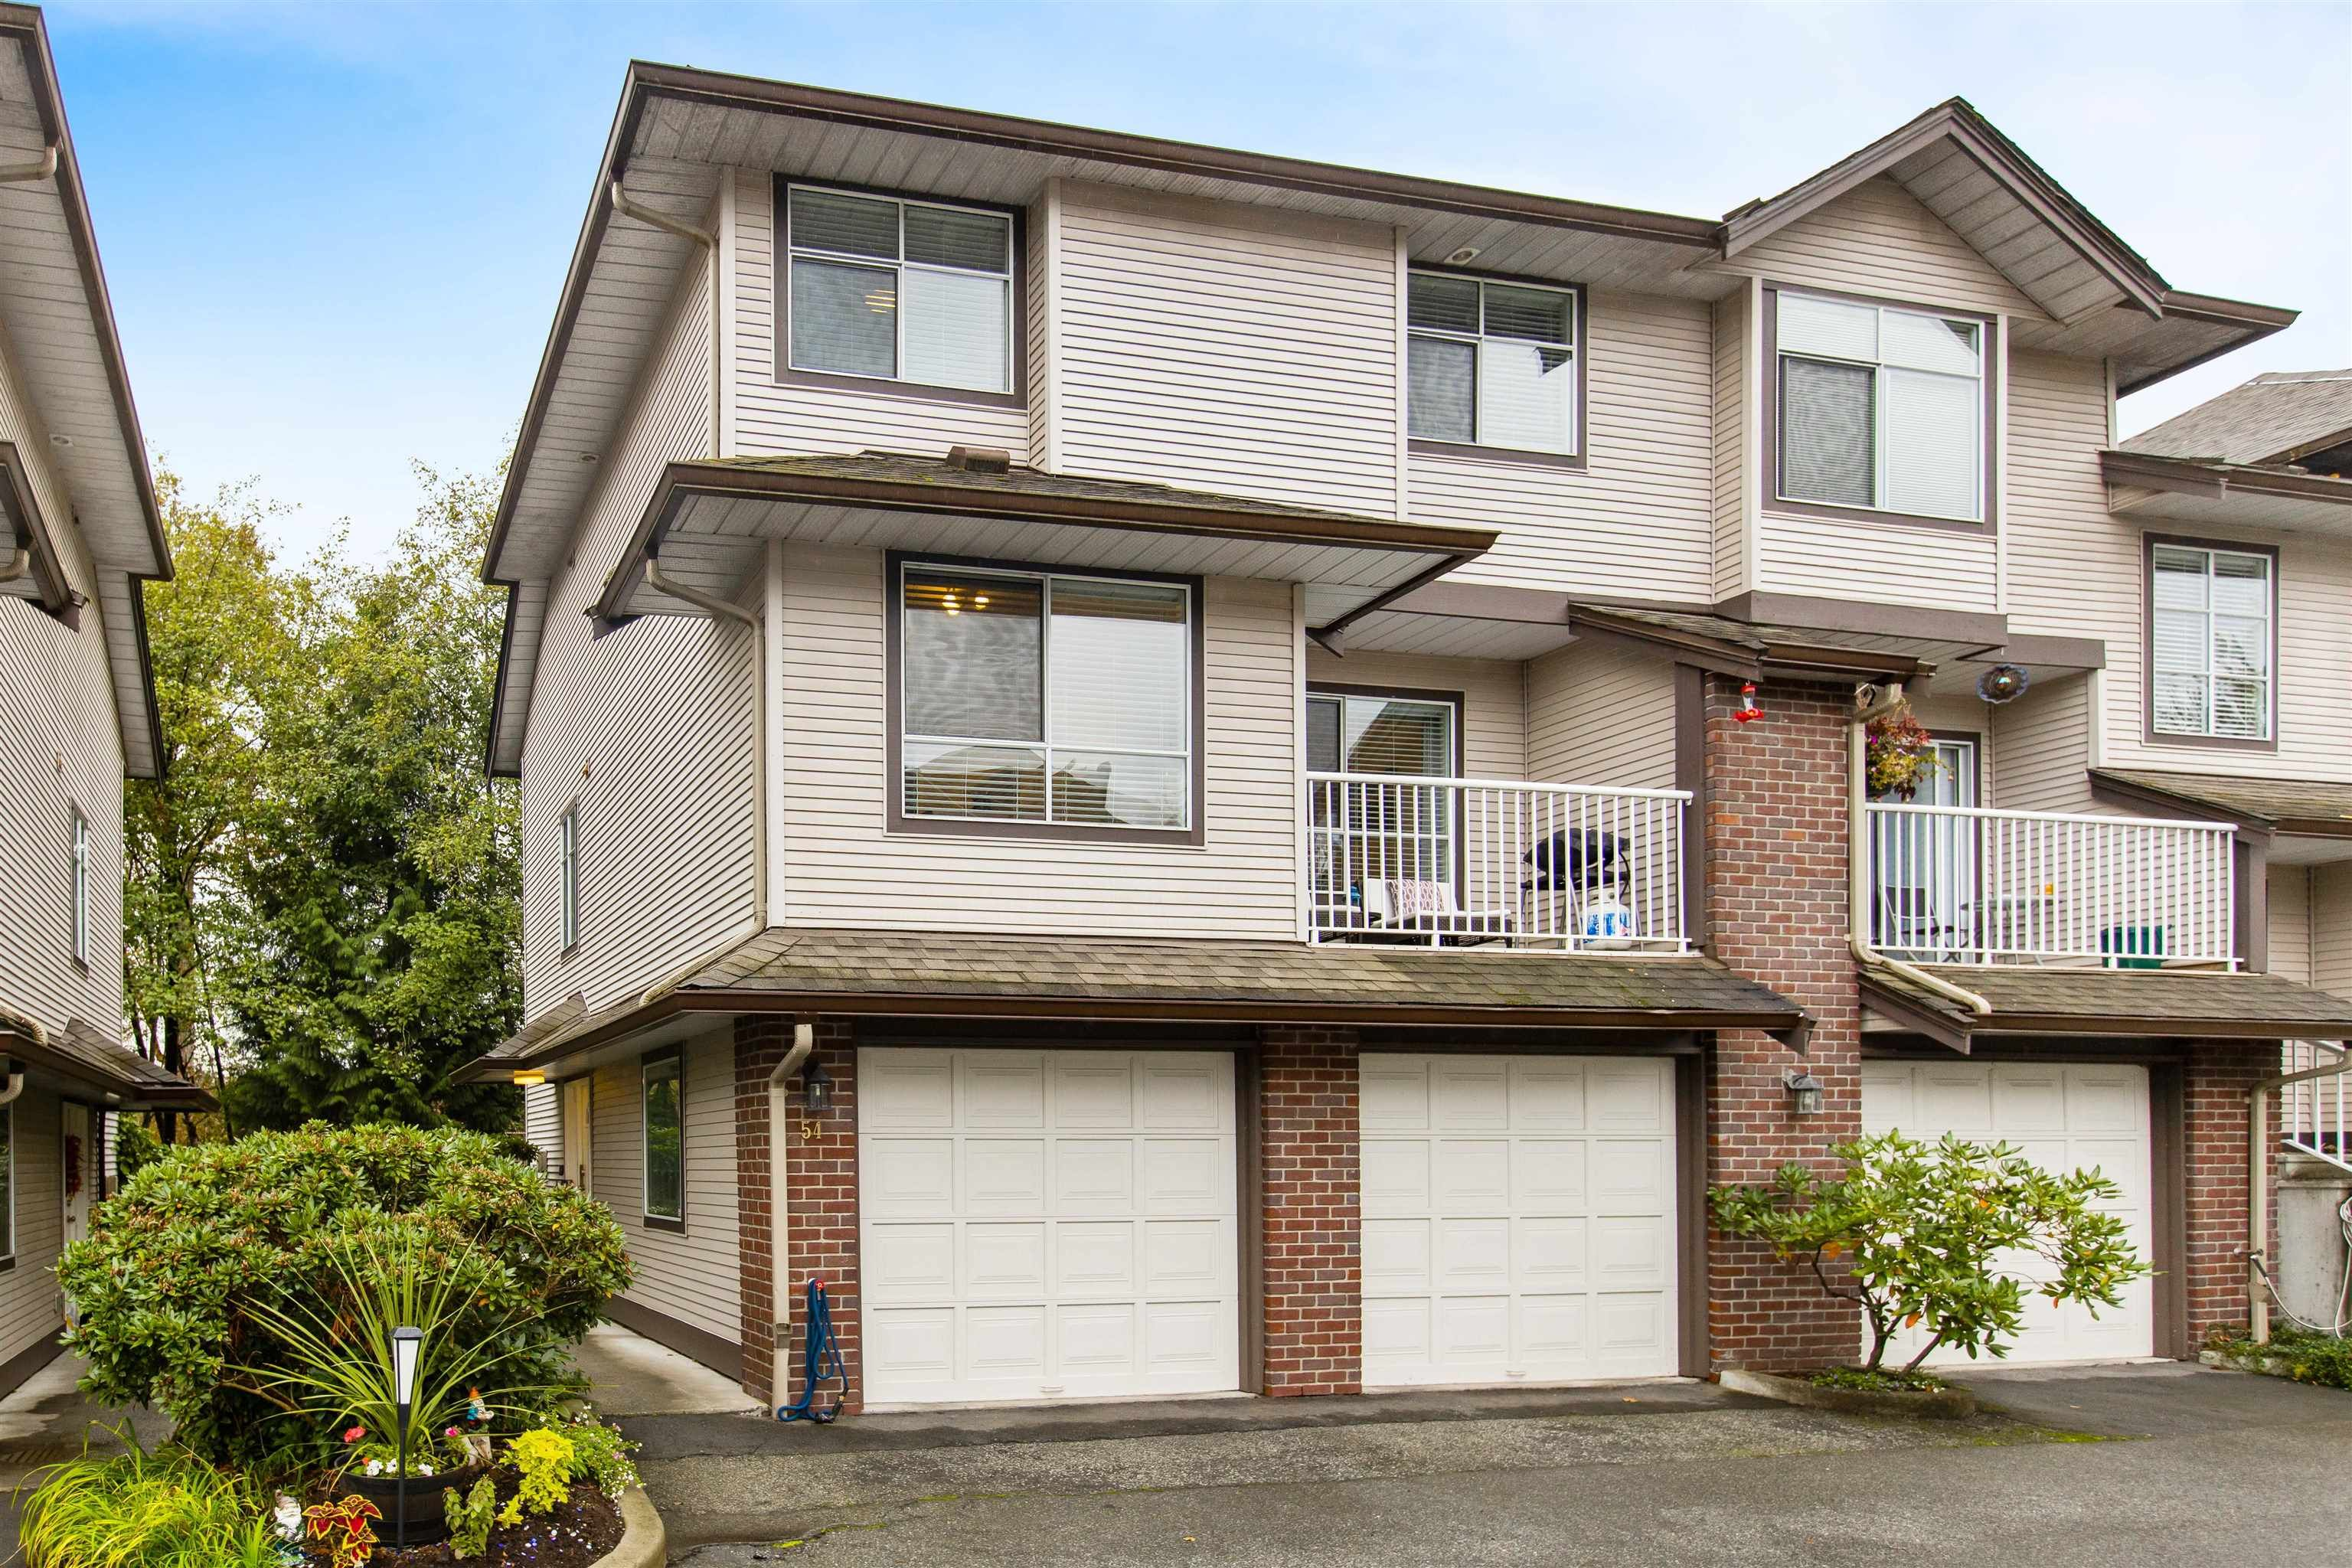 """Main Photo: 54 2450 LOBB Avenue in Port Coquitlam: Mary Hill Townhouse for sale in """"Southside Estates"""" : MLS®# R2622295"""